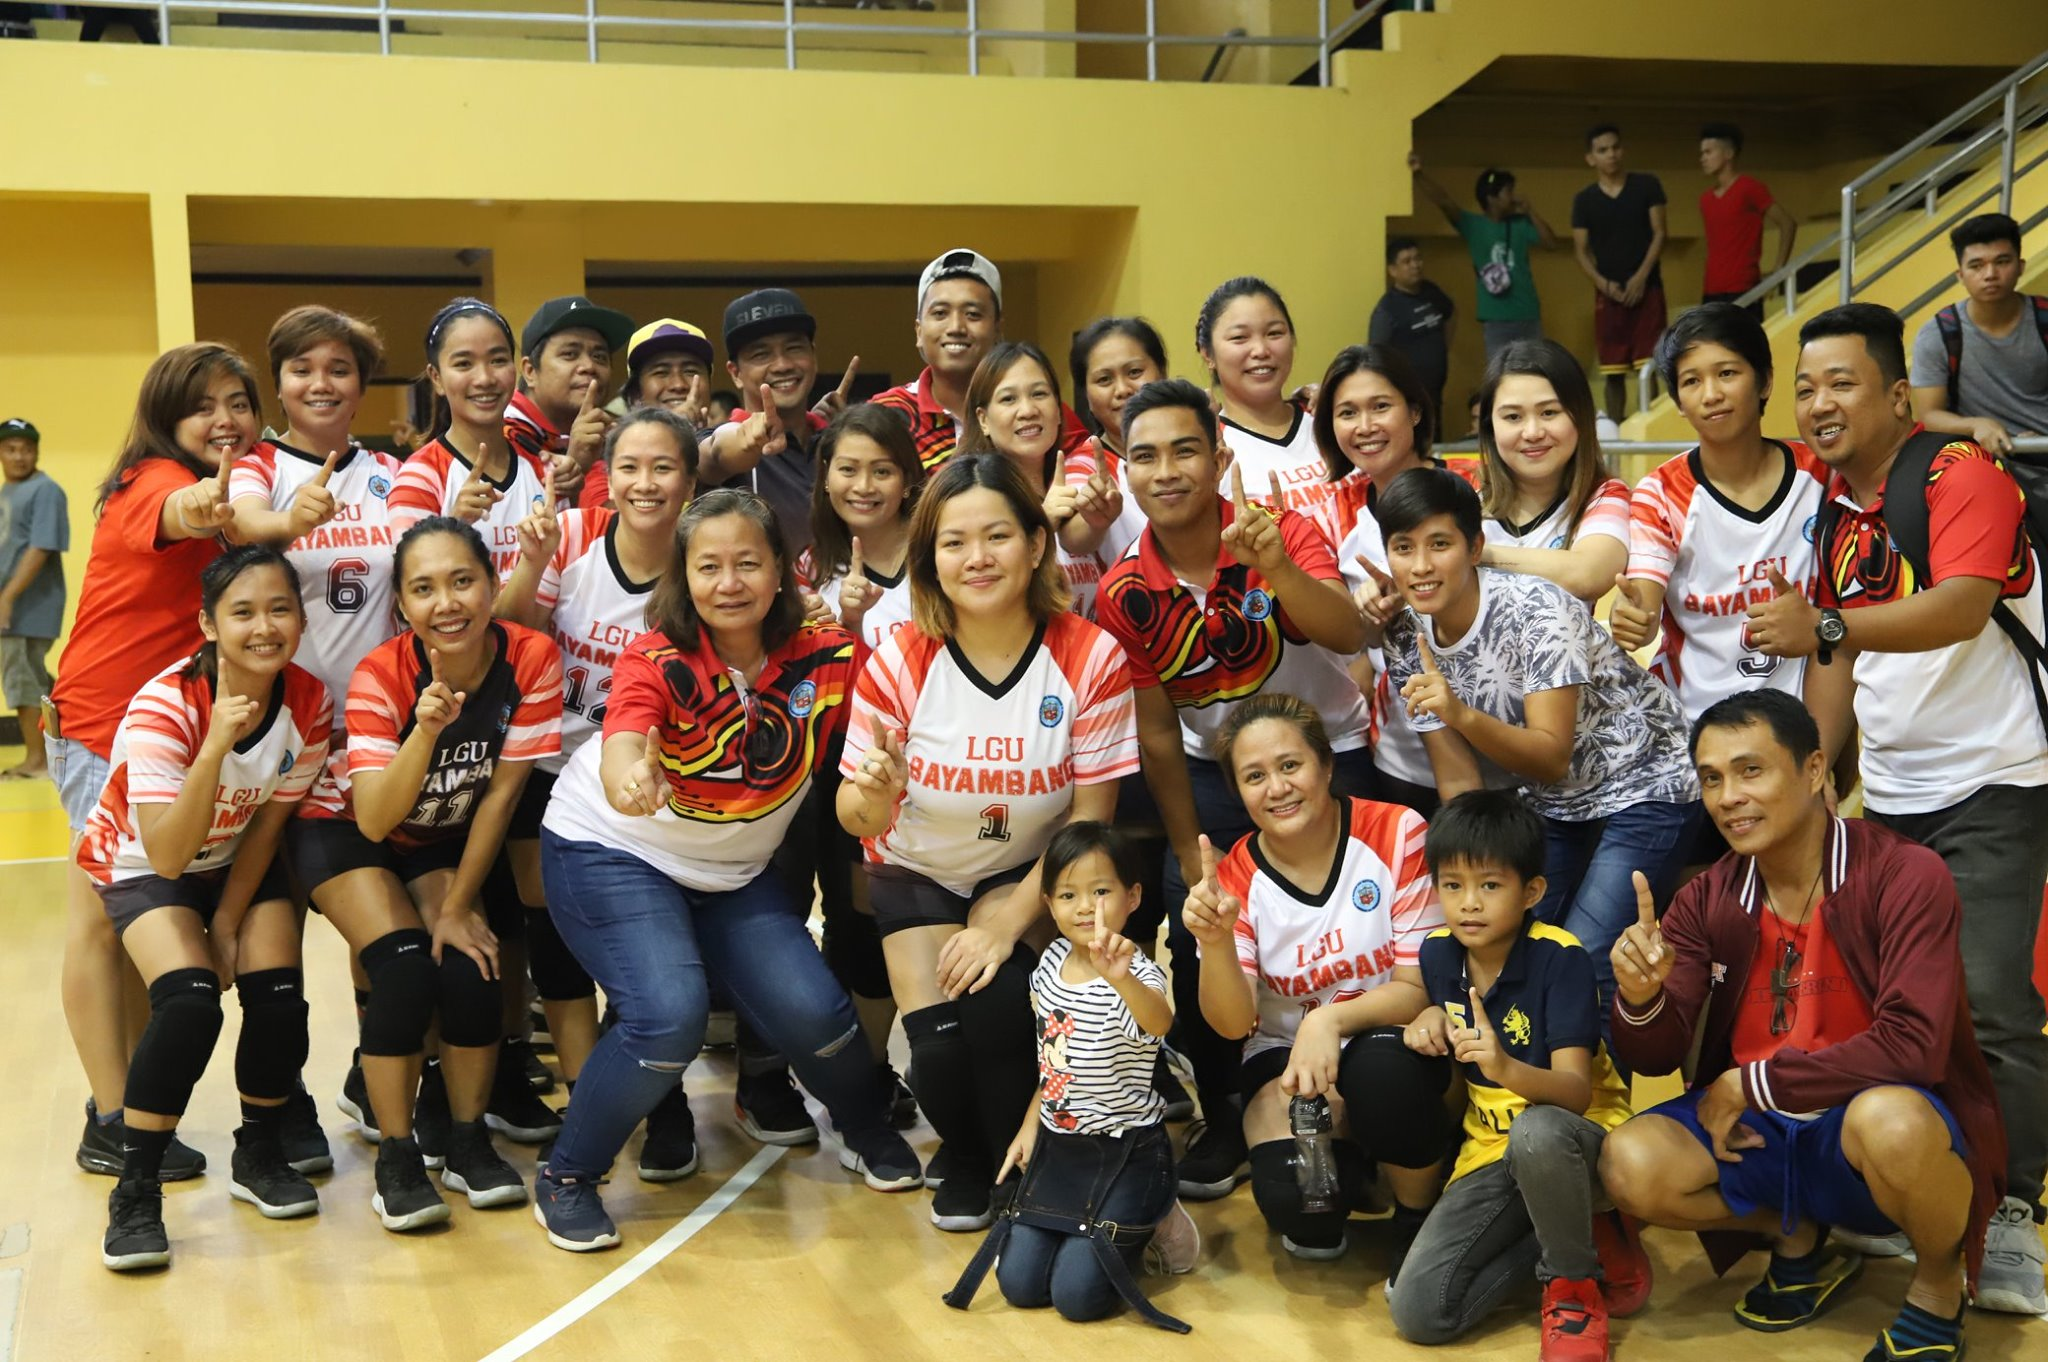 Lady Warriors nagkampeon!